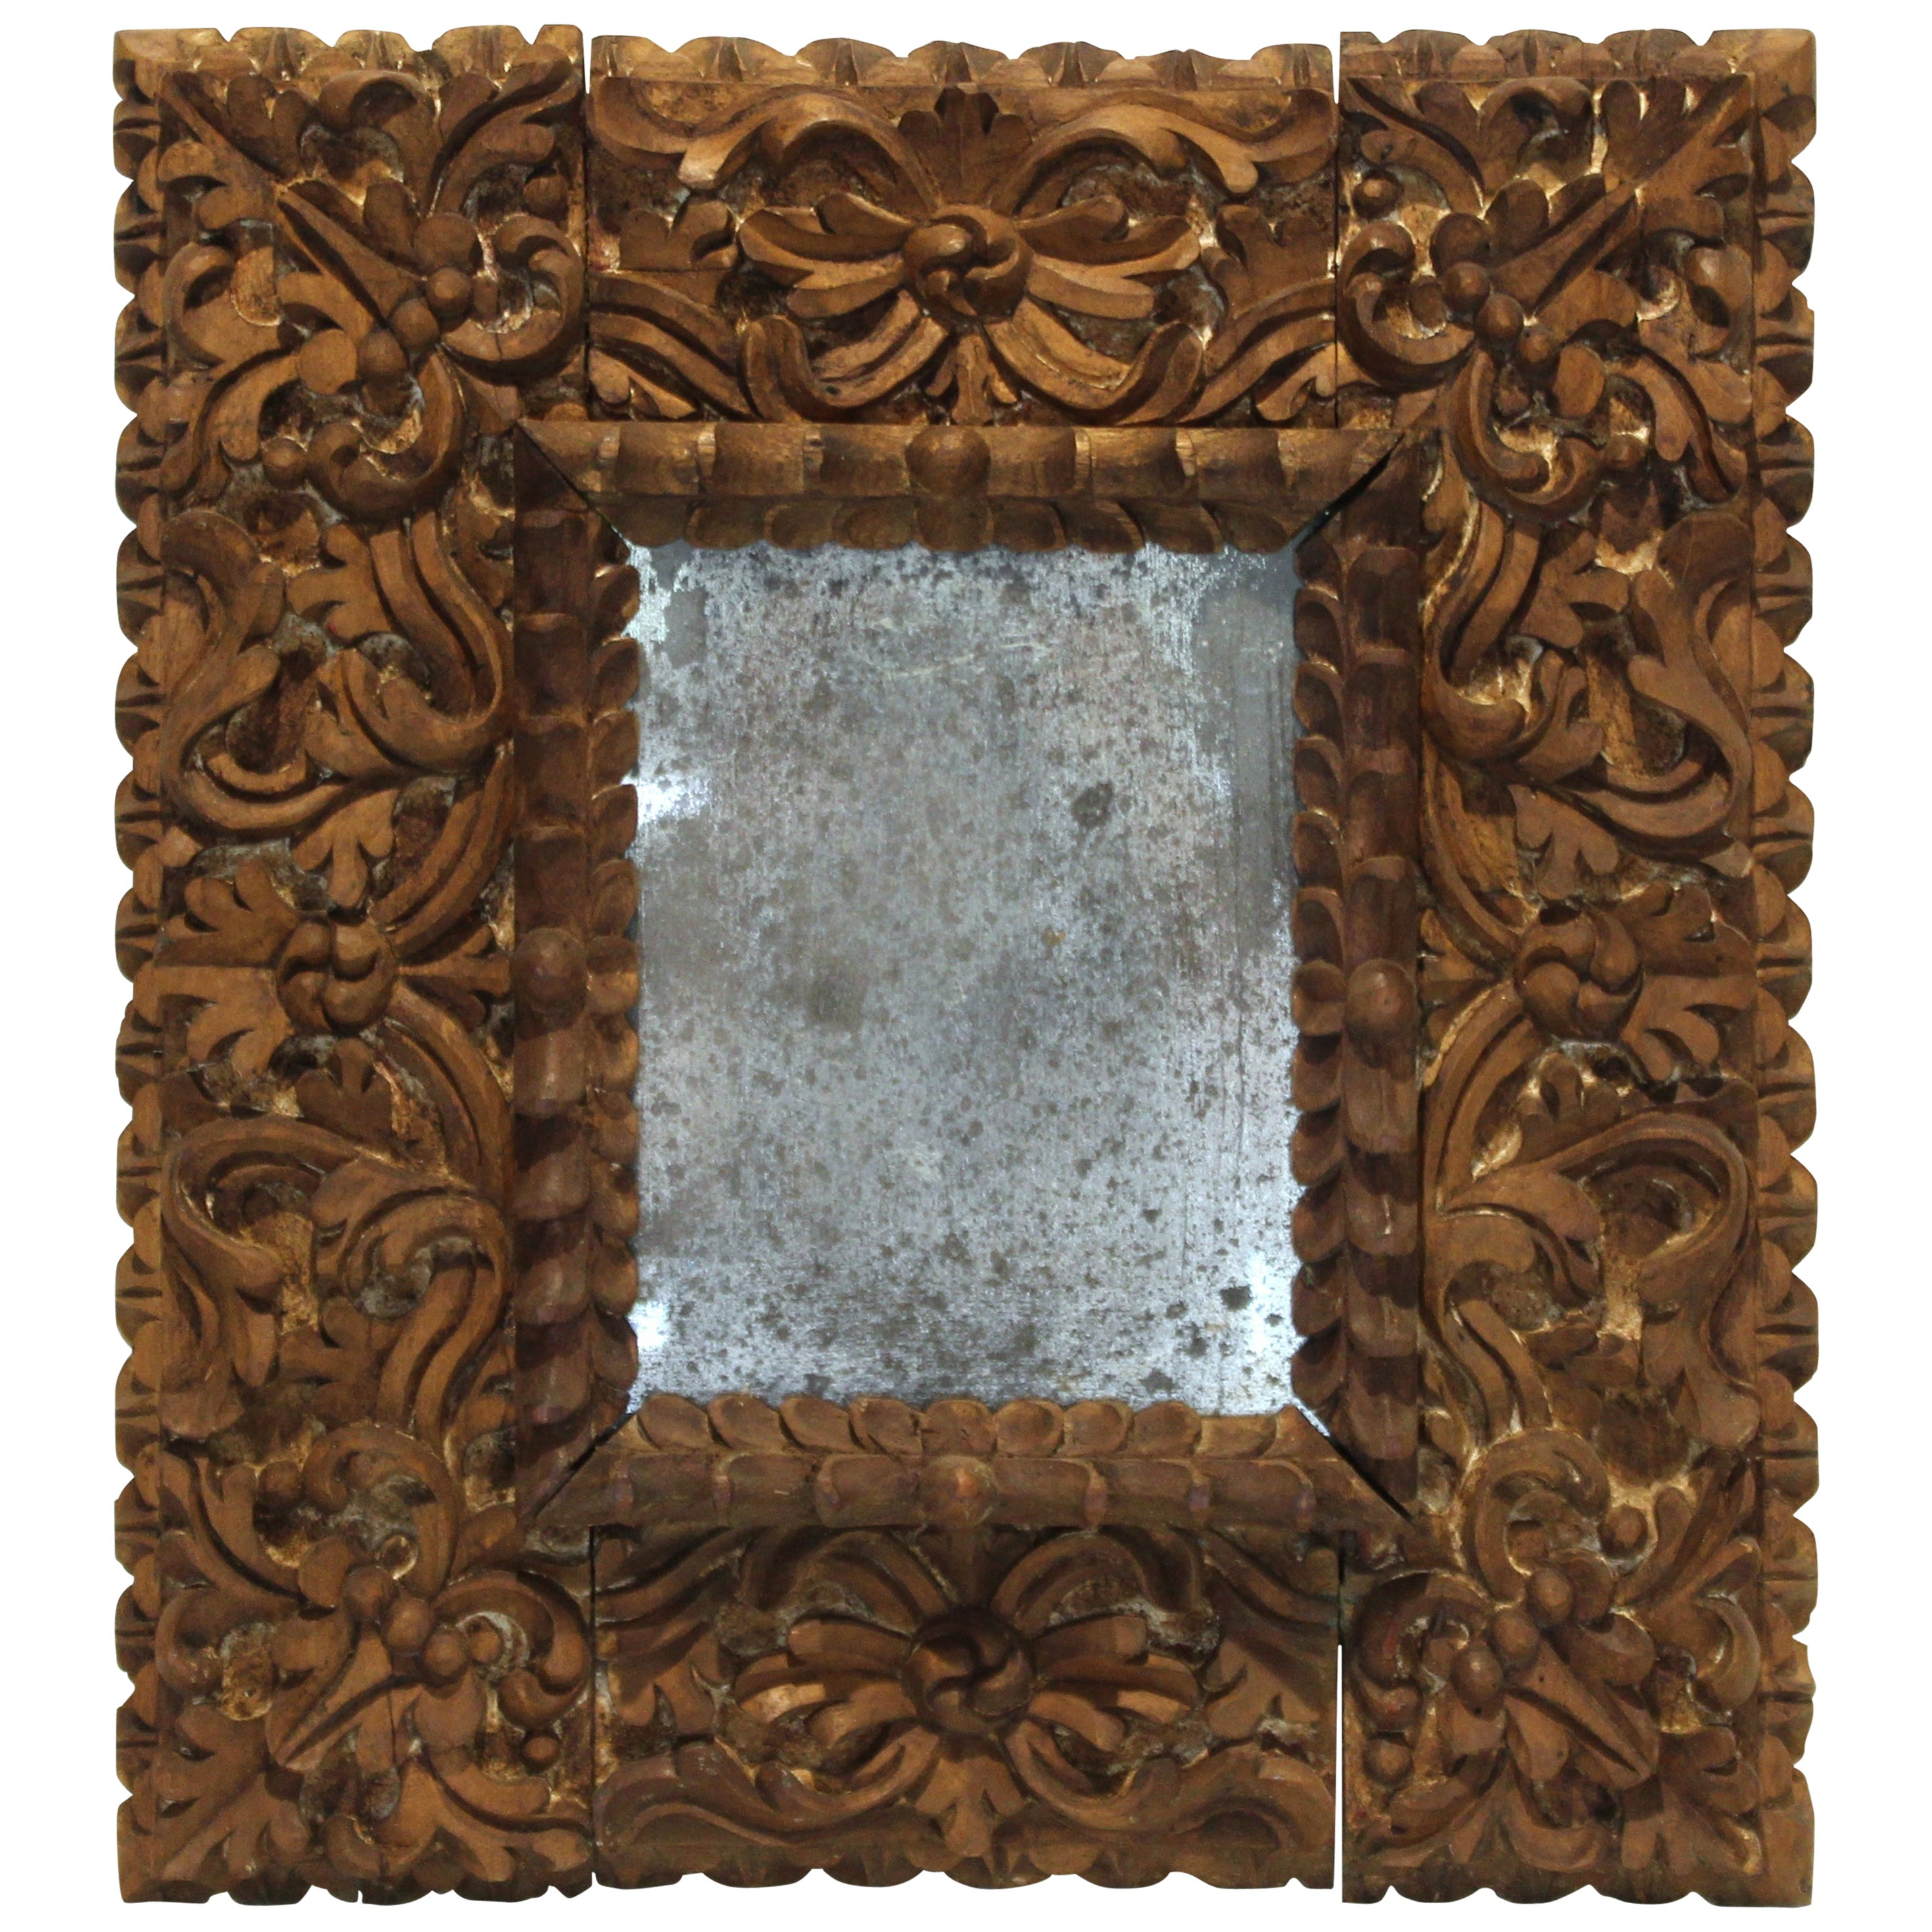 Spanish Colonial Baroque Deeply Carved Relief Mirror or Picture Frame